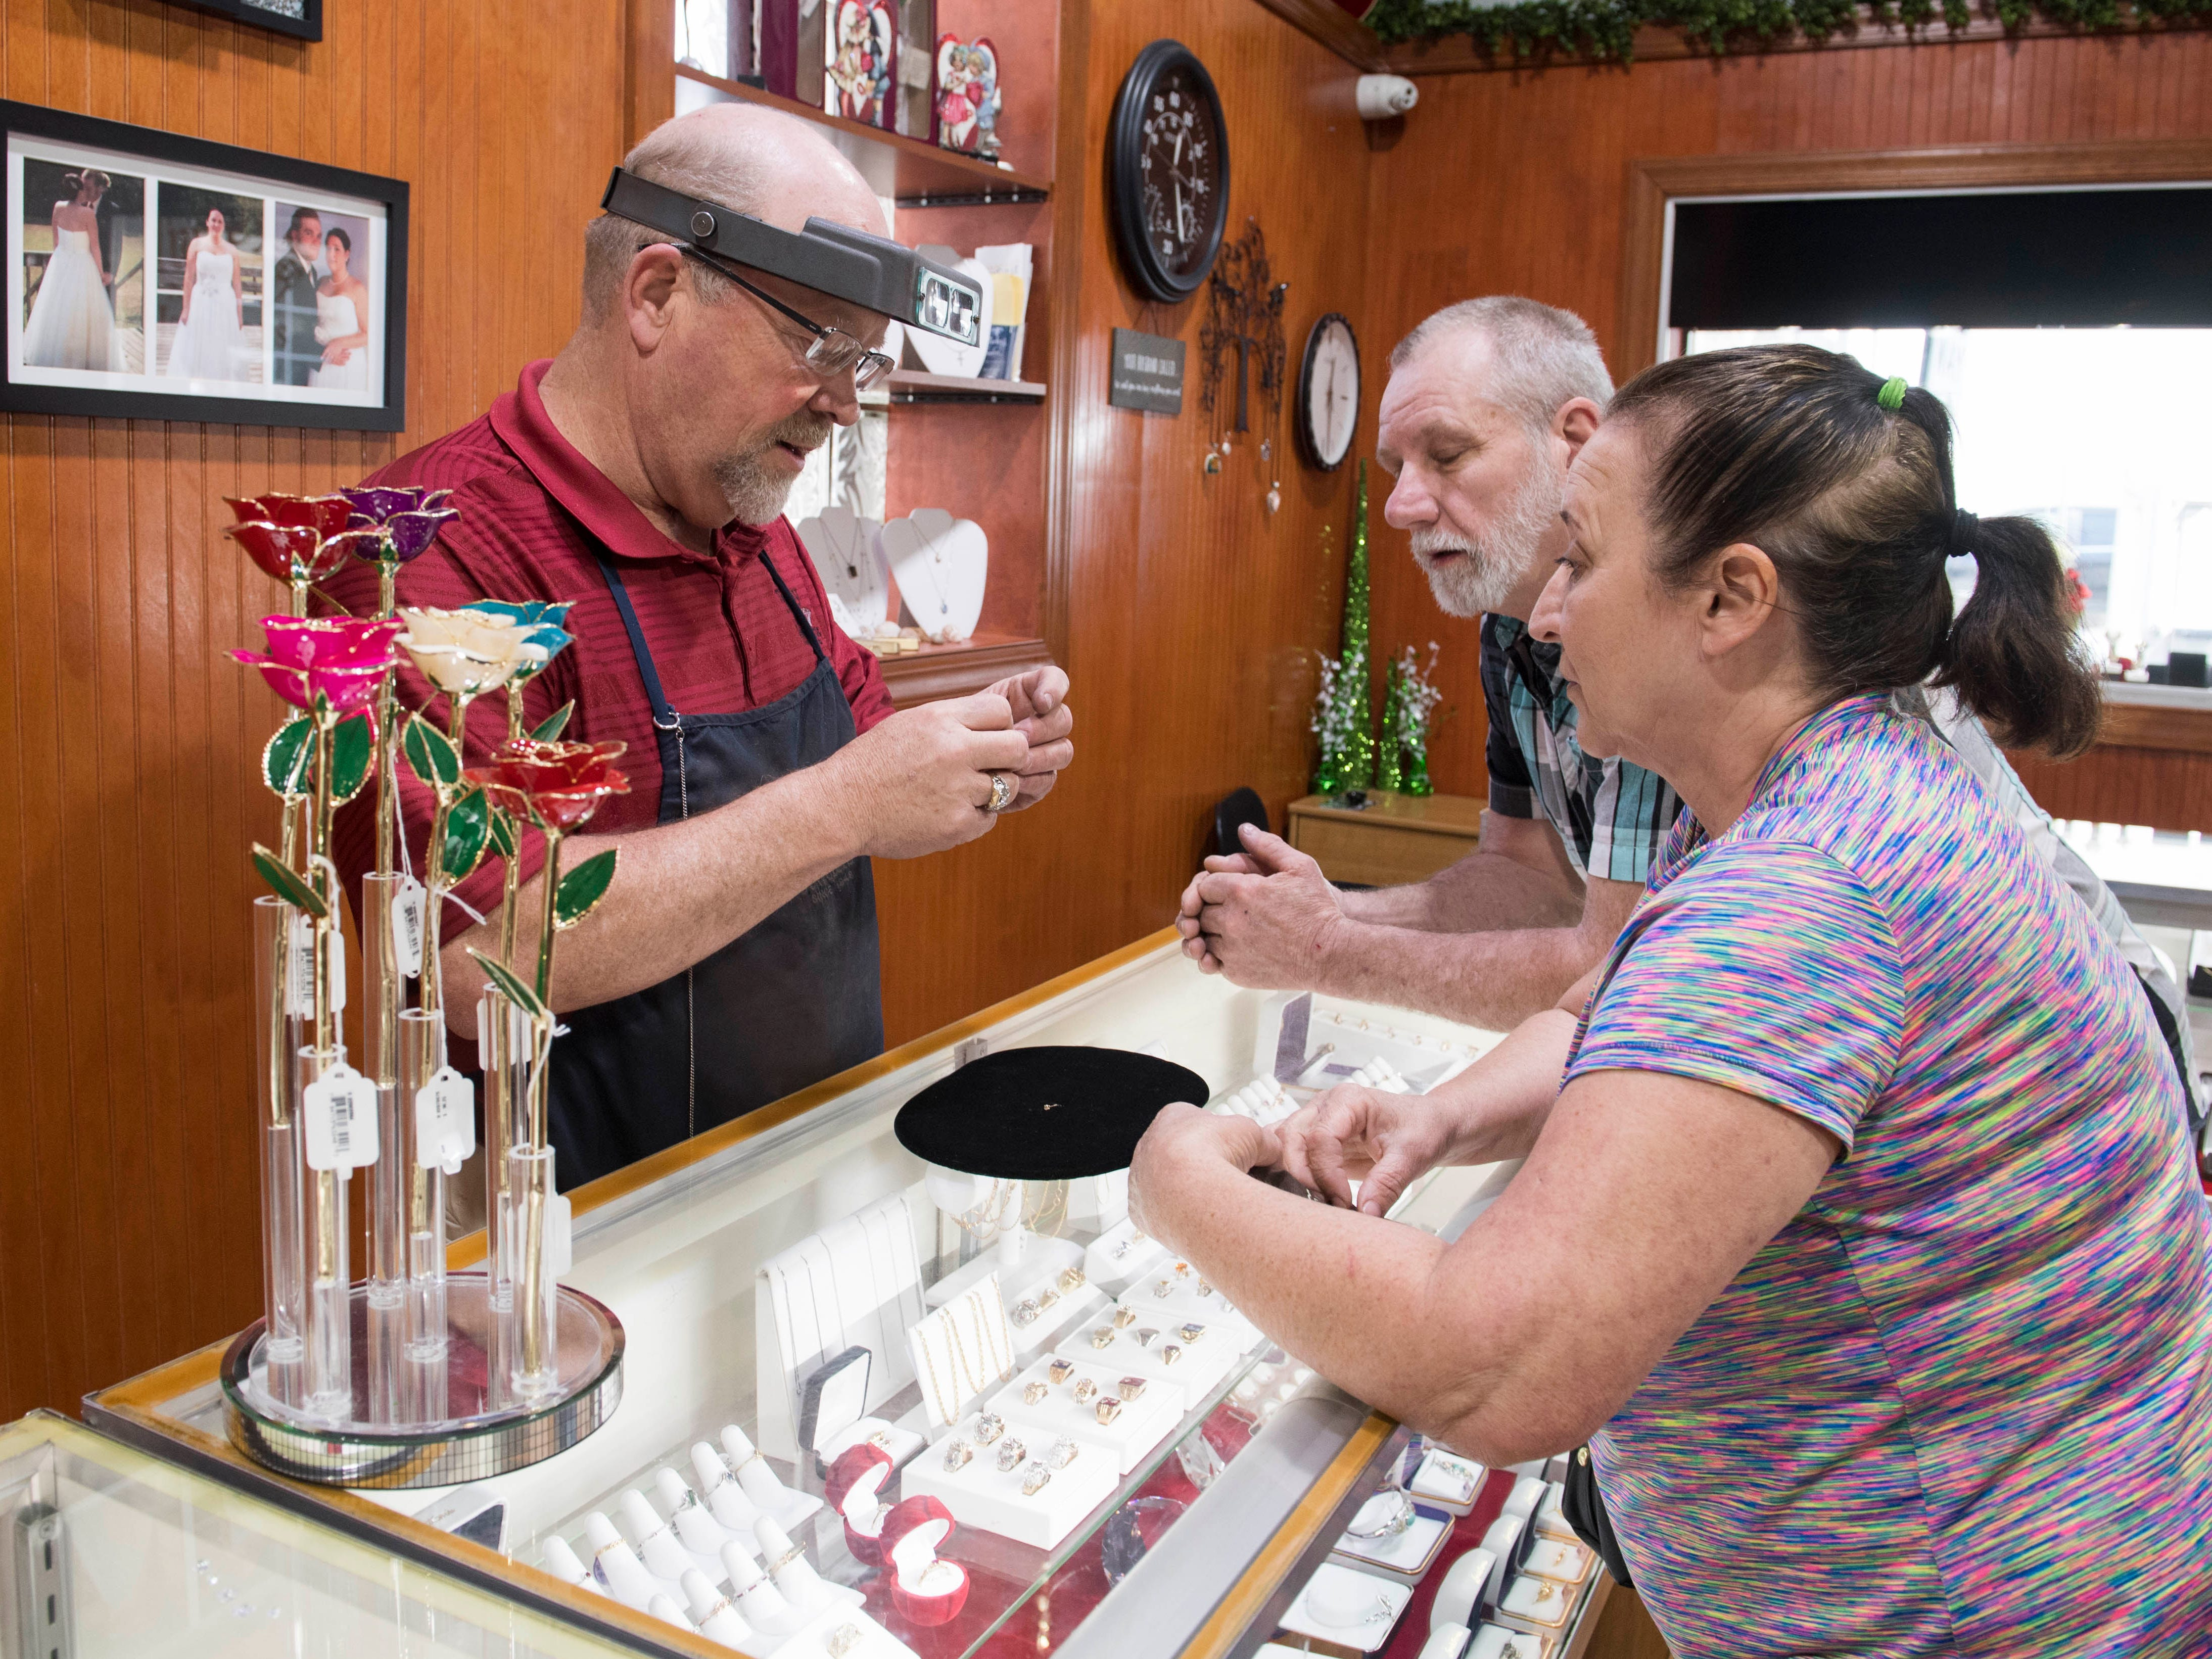 Owner Bryan Turley of Turley Mfg. Jewelers assist customers with earrings, Wednesday, April 10, 2019.